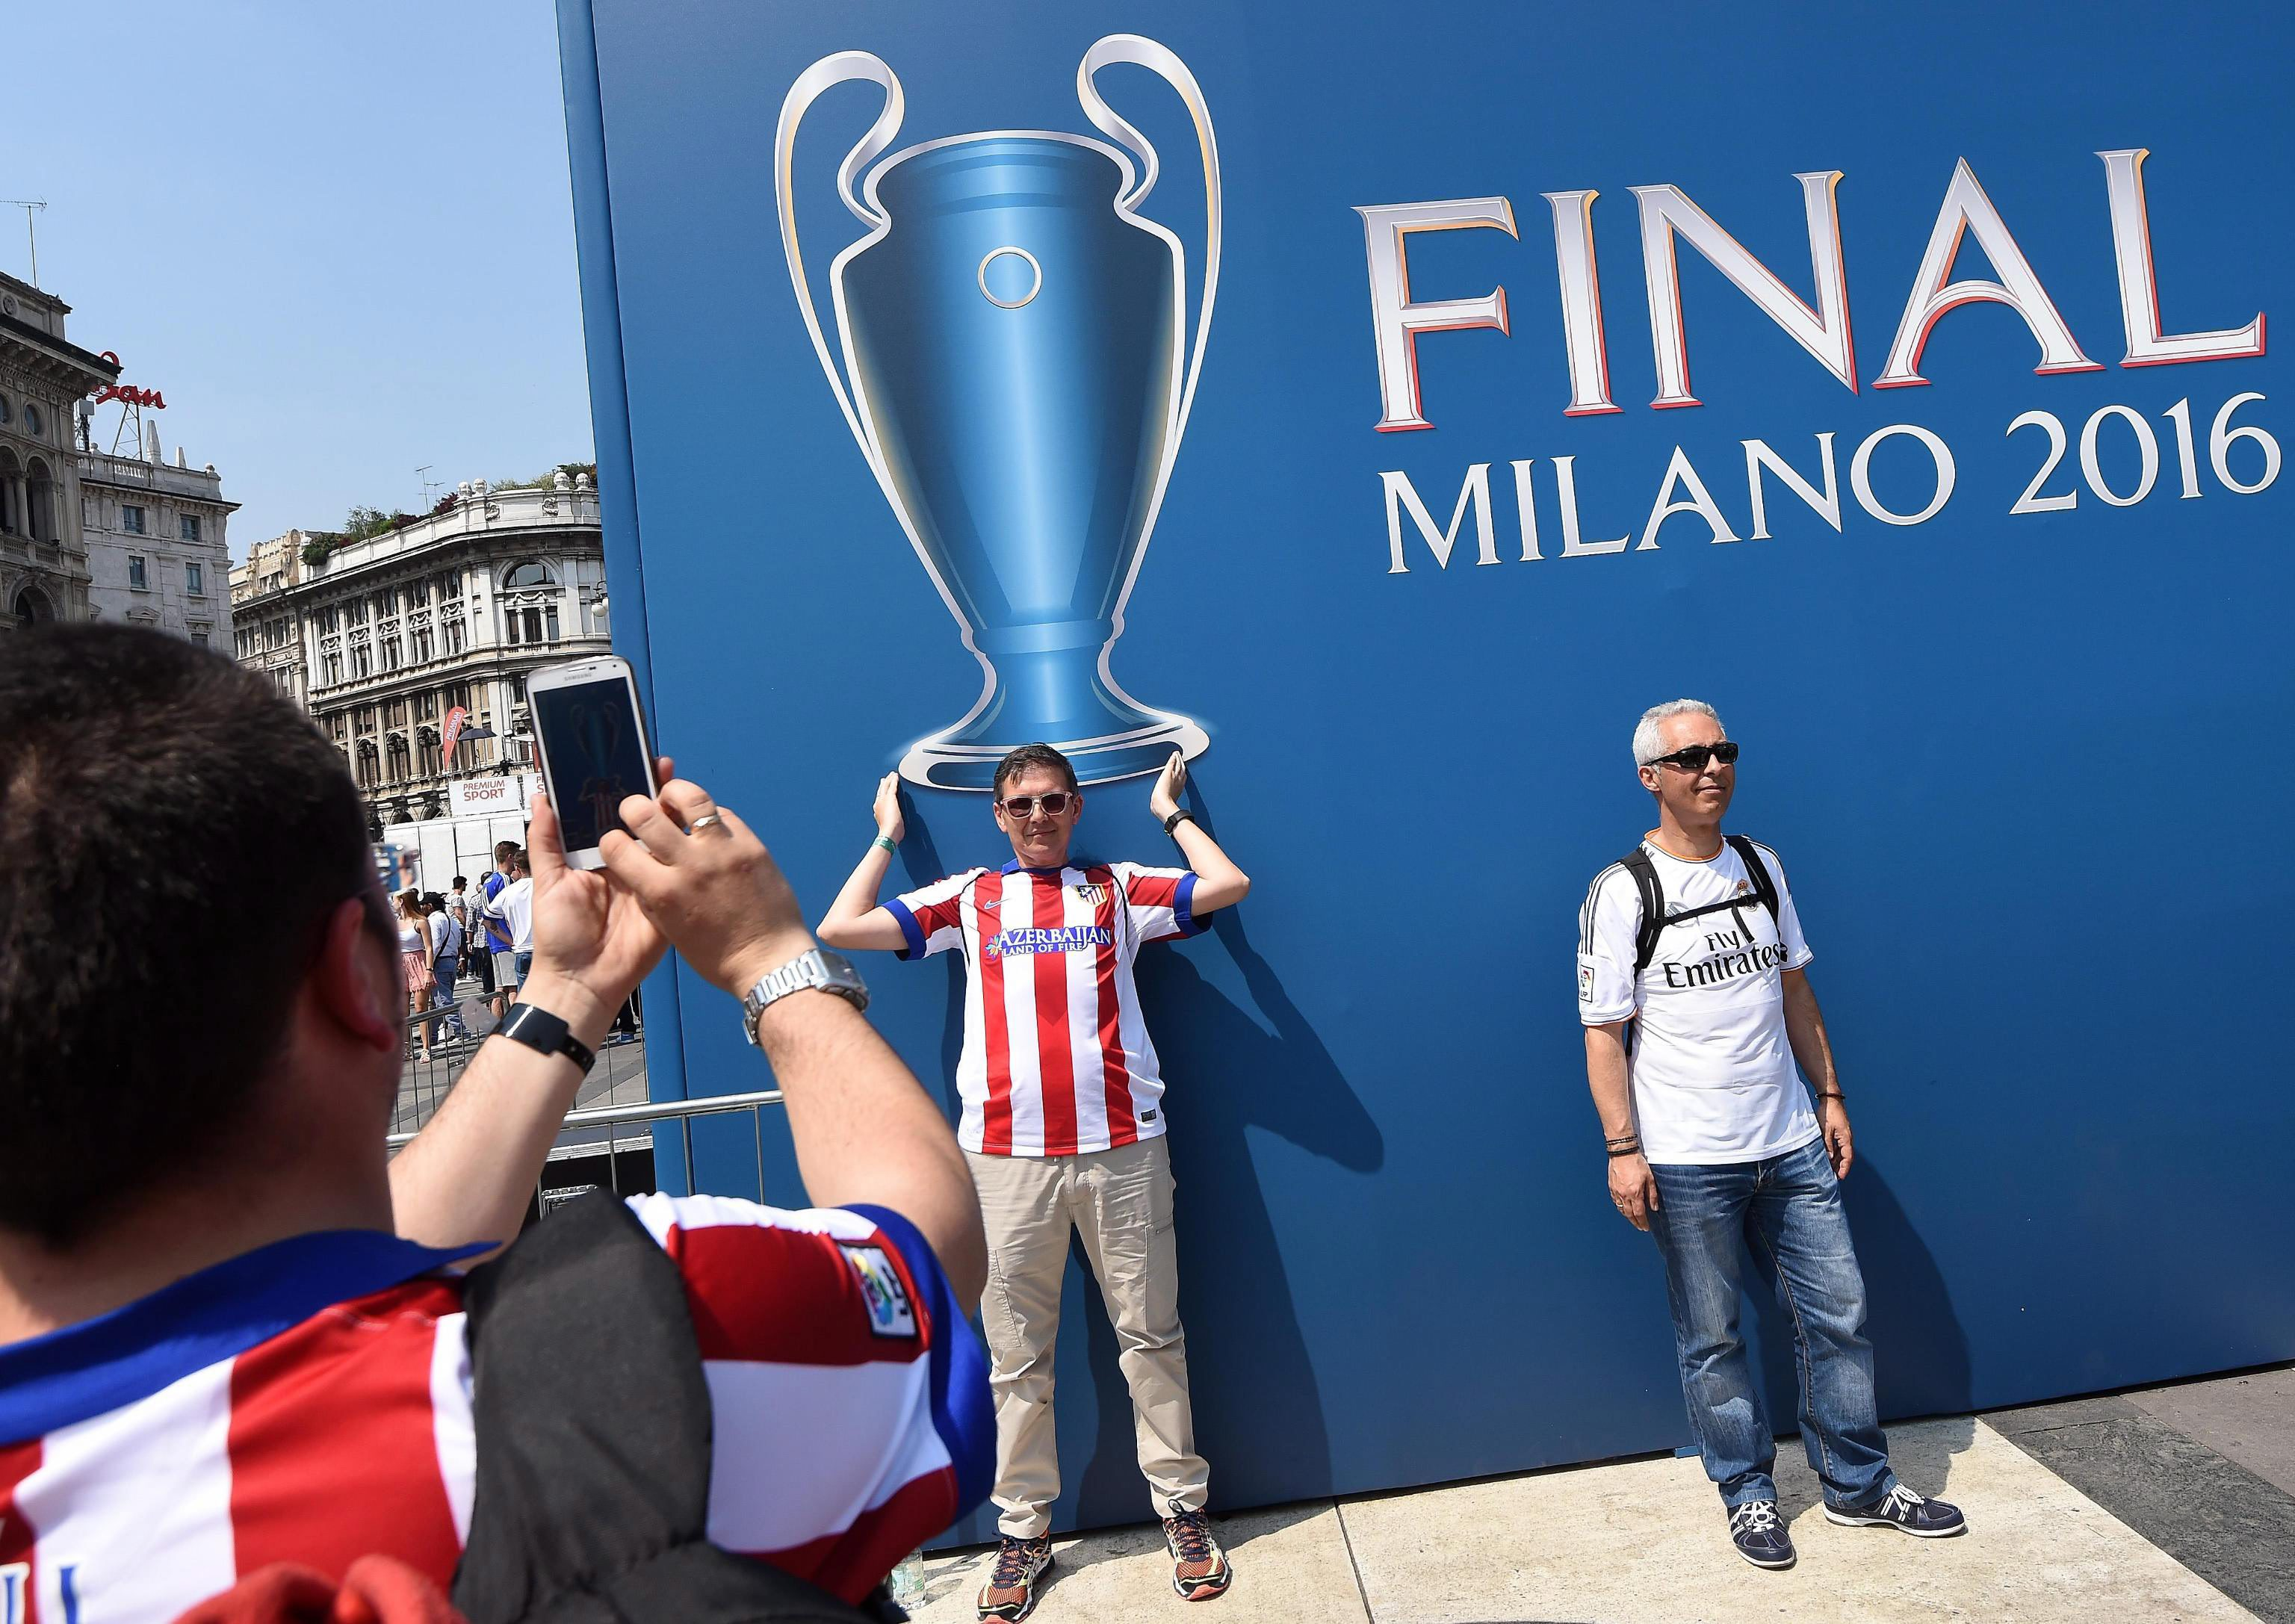 CBR139. Milan (Italy), 27/05/2016.- Atletico and Real Madrid's supporters pose for photo in Duomo Square in Milan, Italy, 28 May 2016. Real Madrid will face Atletico Madrid in the UEFA Champions League Final on 28 May 2016 in Milan. (Liga de Campeones, Italia) EFE/EPA/DANIEL DAL ZENNARO